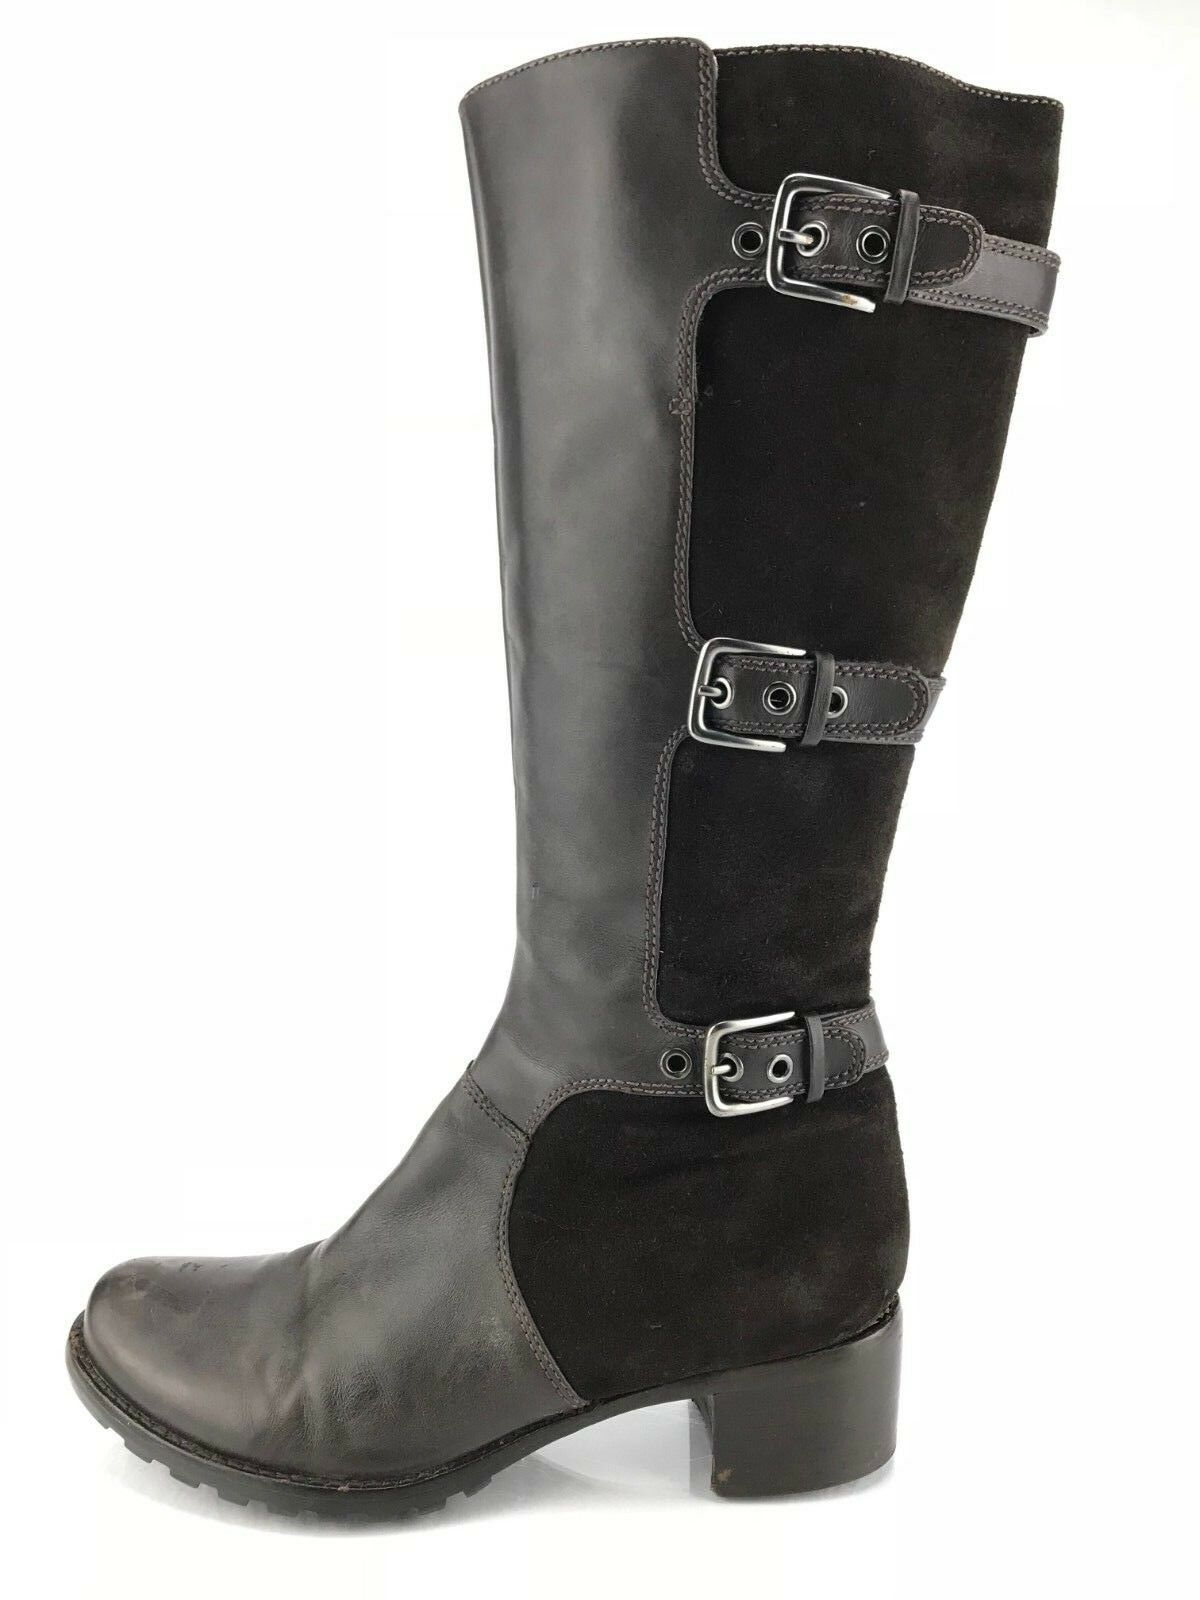 Ecco Knee High Stiefel - braun Leather Suede Low Heel Buckles Zipper damen Größe 8